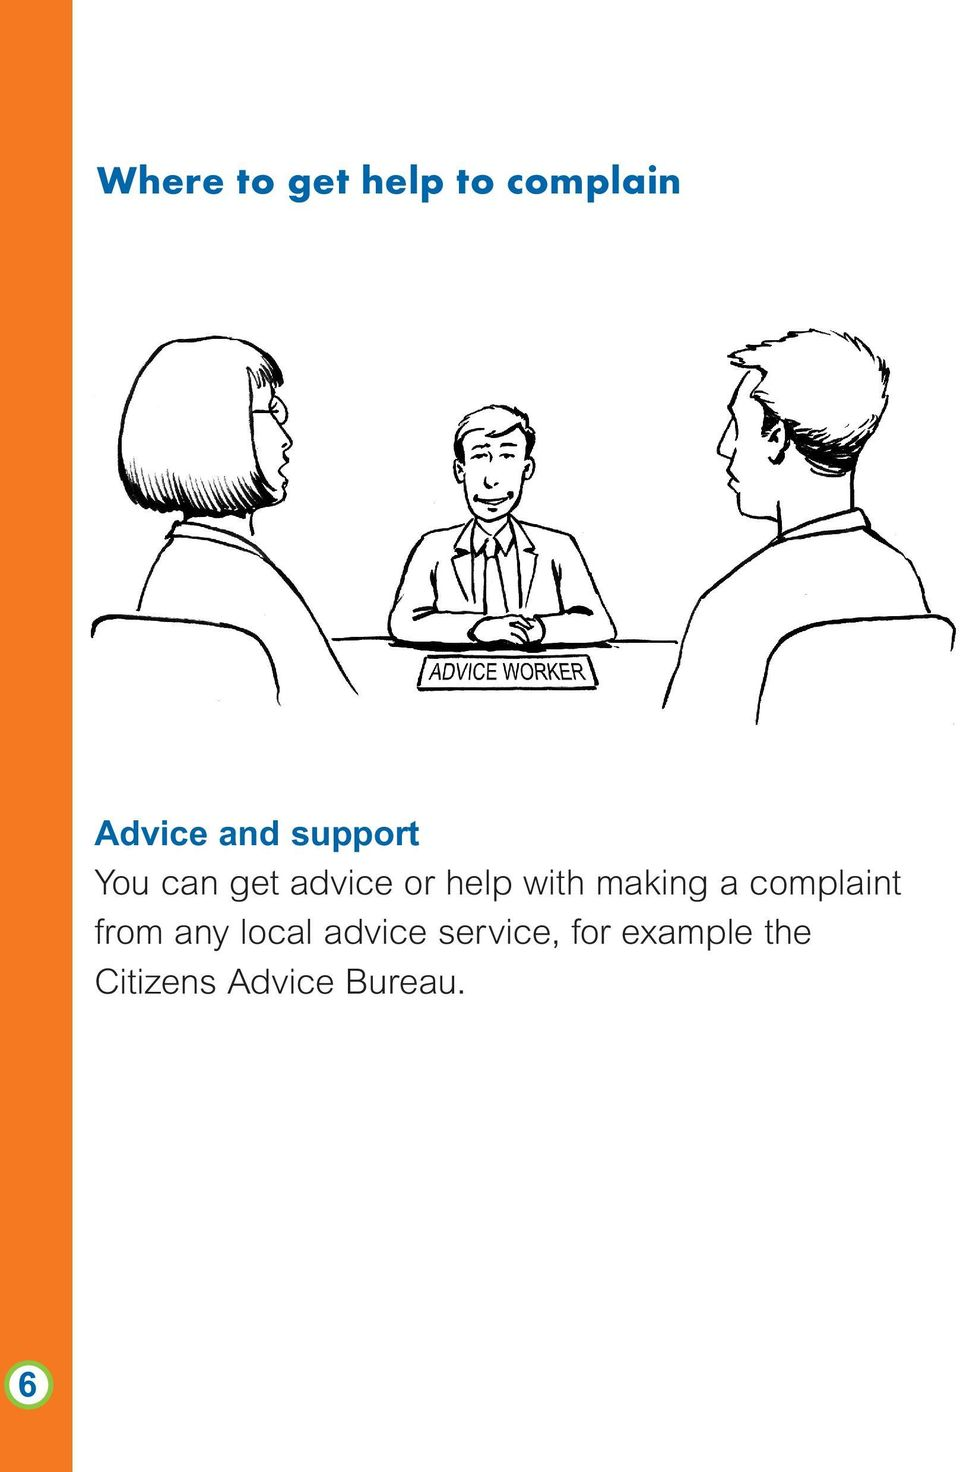 making a complaint from any local advice